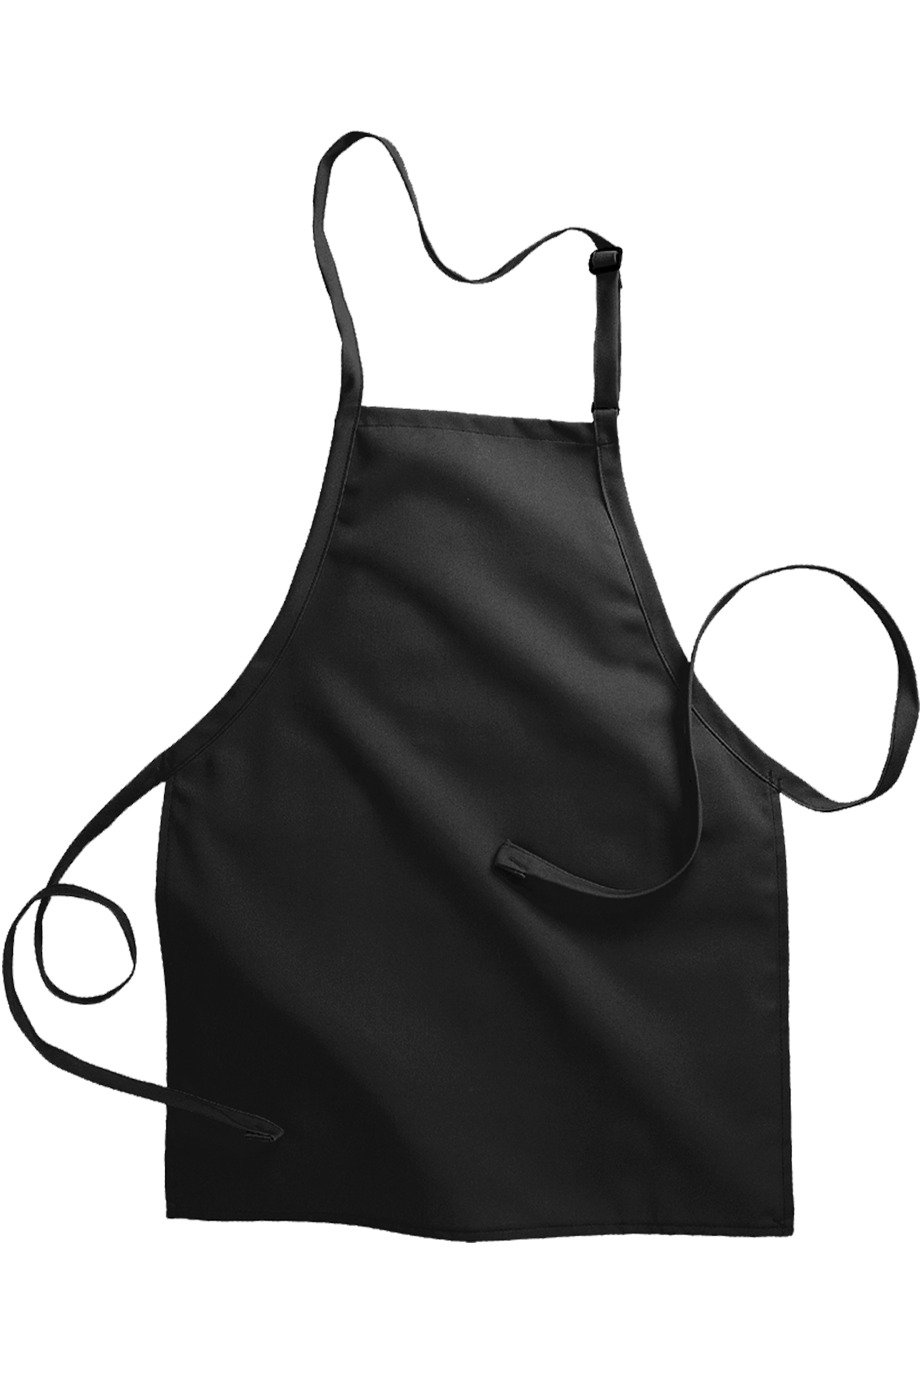 Bib Adjustable Apron (No Pockets)